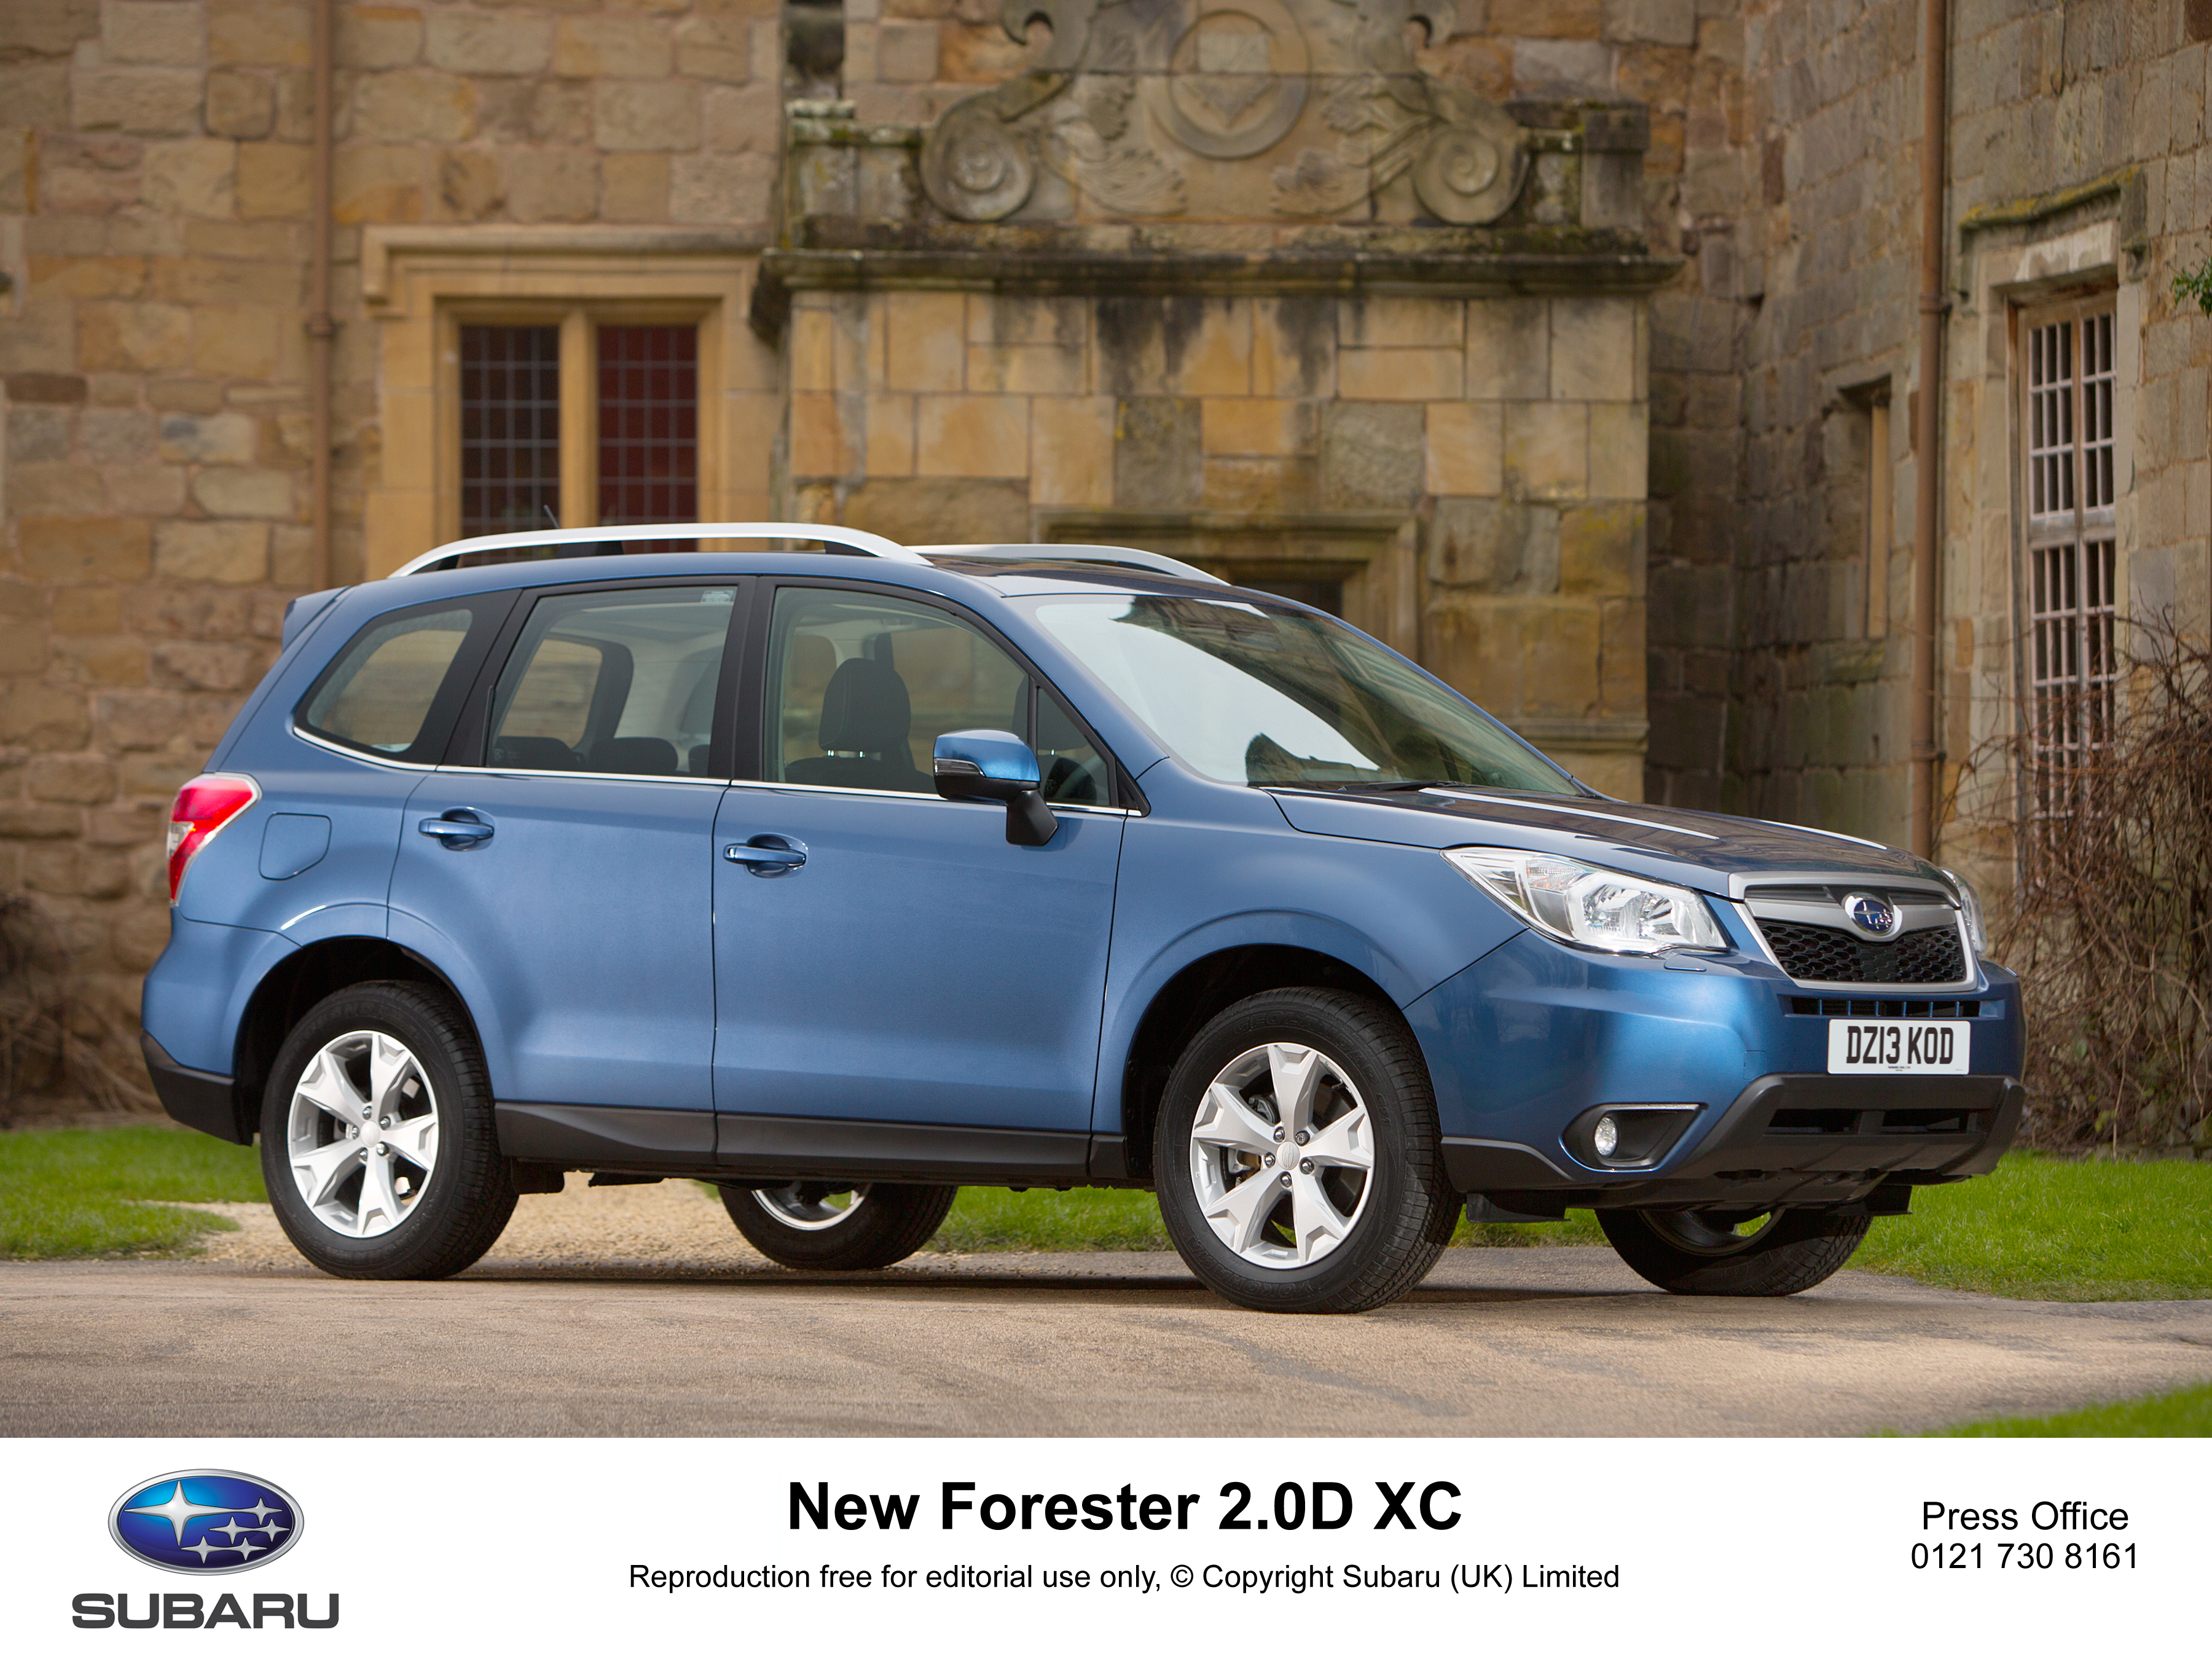 Subaru confirms Forester prices